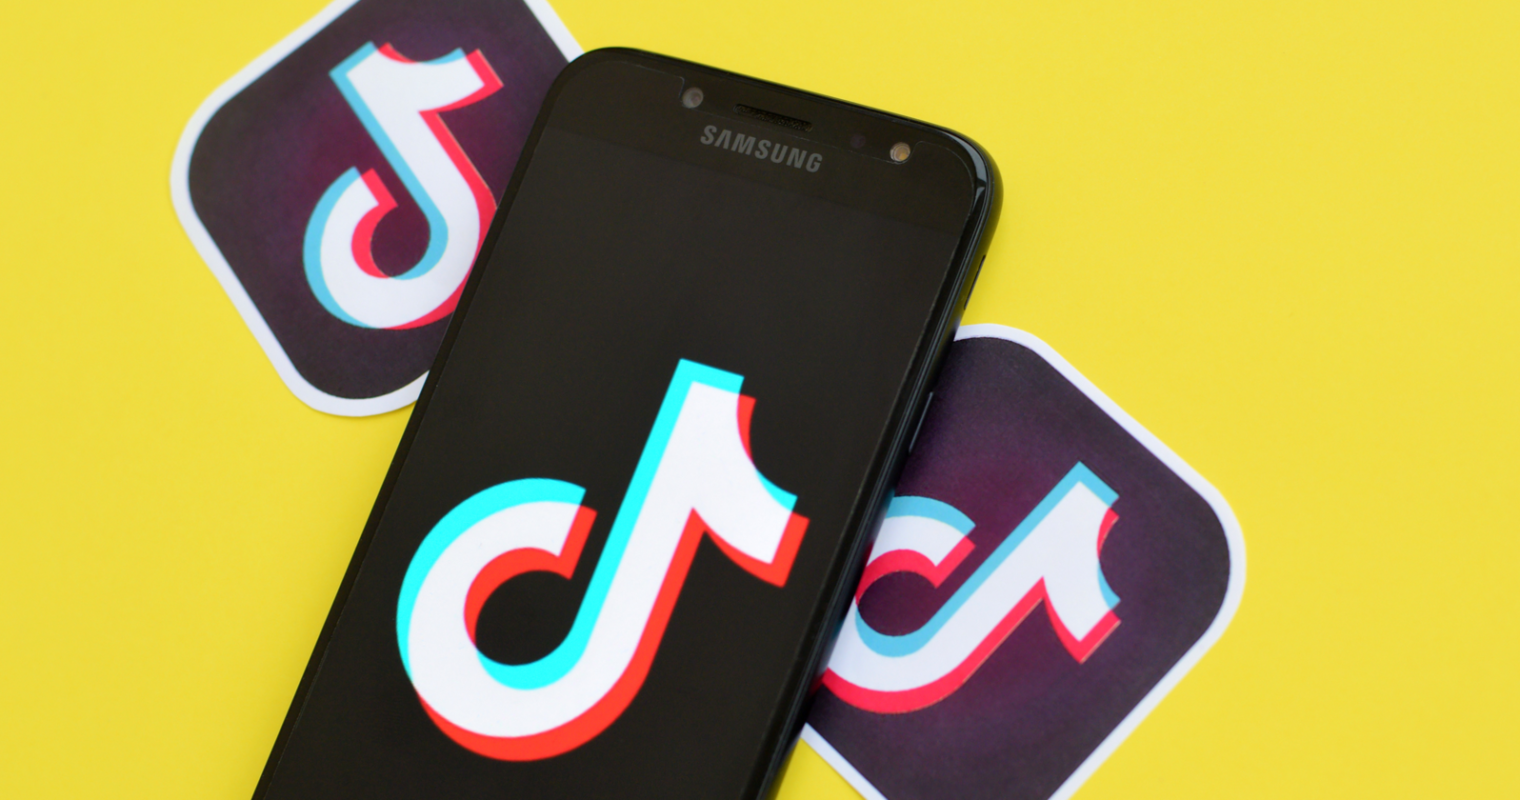 Why Marketers Shouldn't Underestimate the Value of TikTok